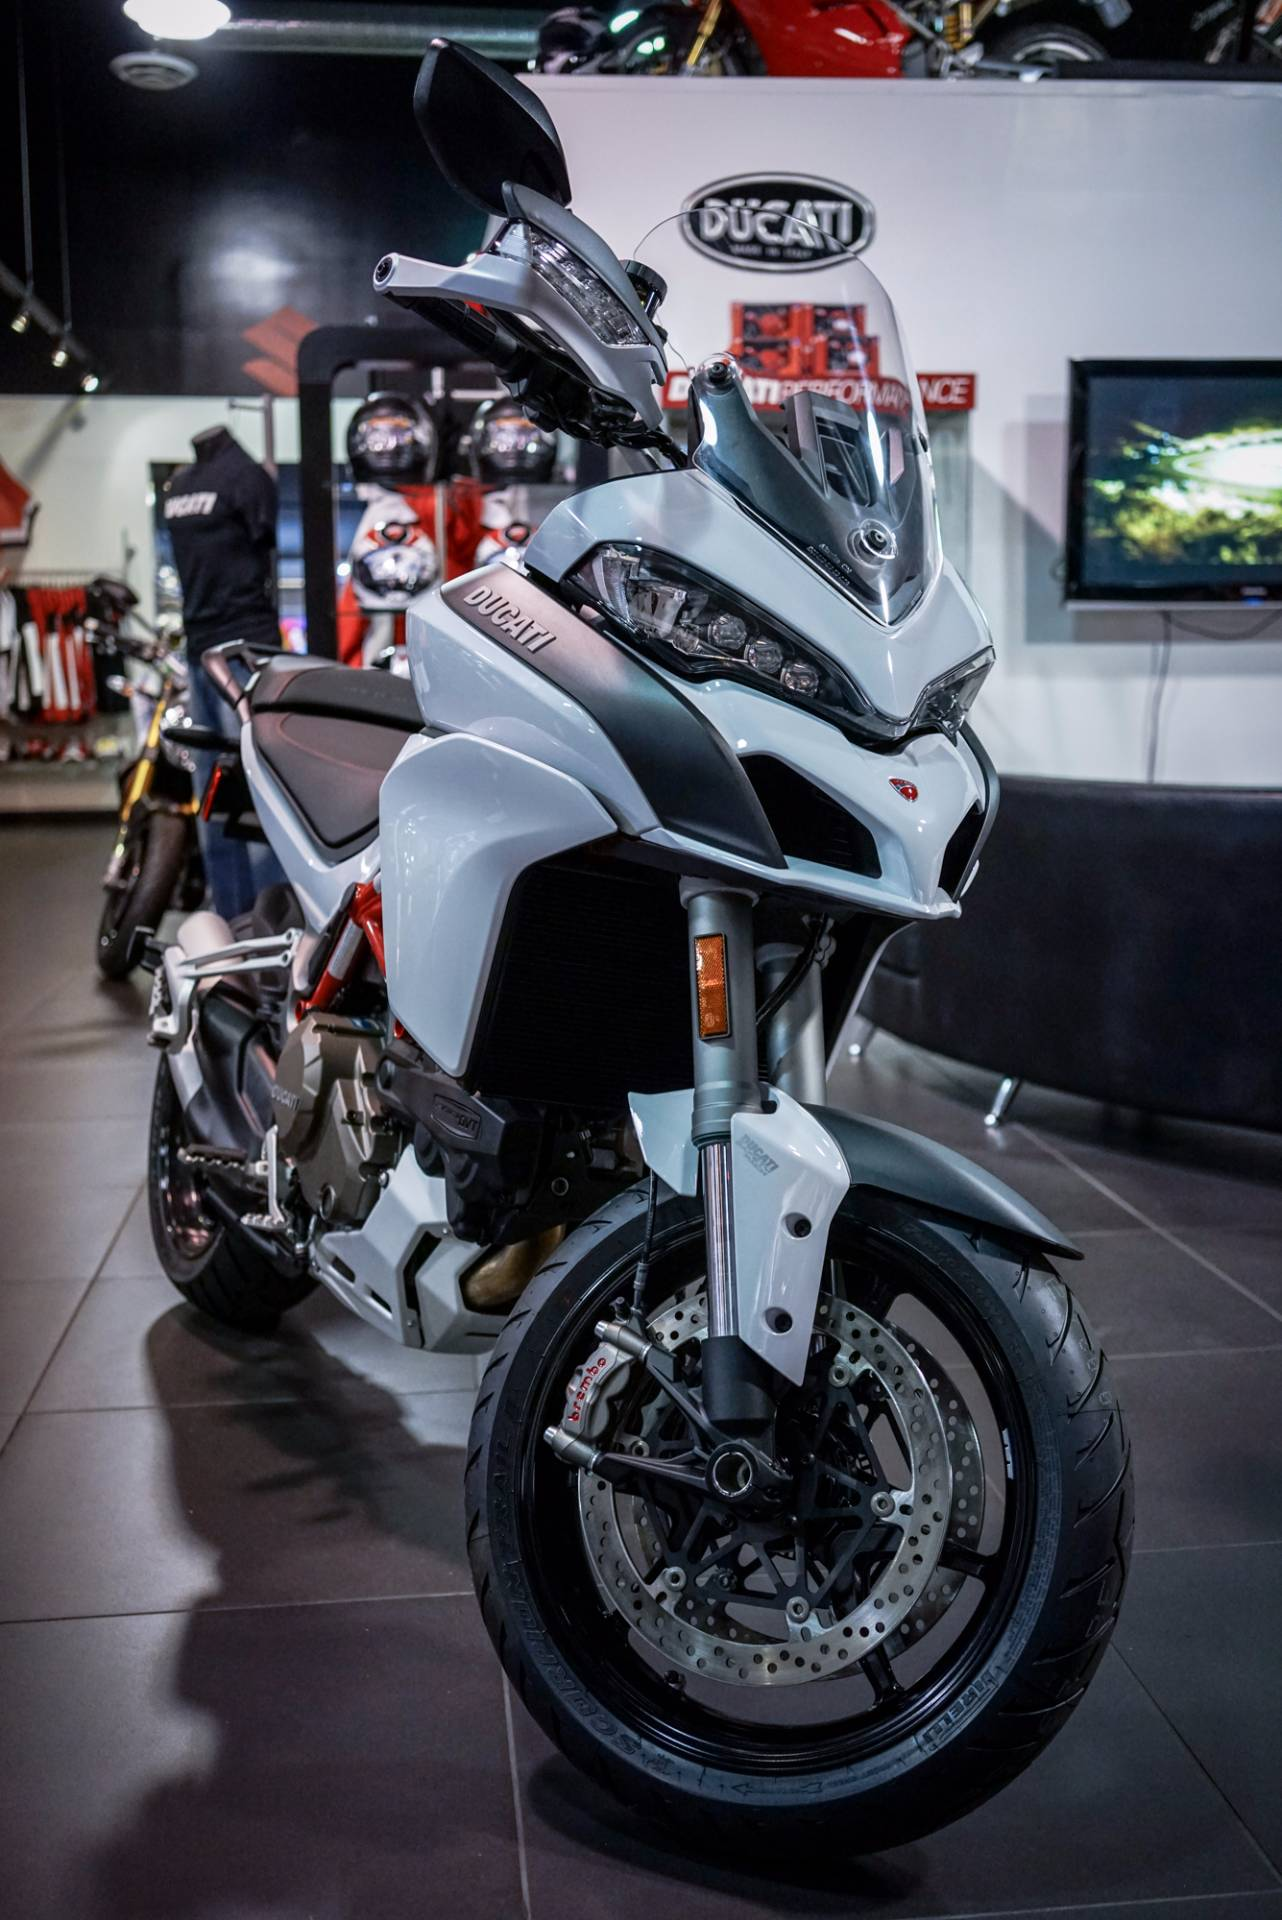 The Multistrada 1200 S takes riding beyond all the barriers of compromise Nothing stands in your